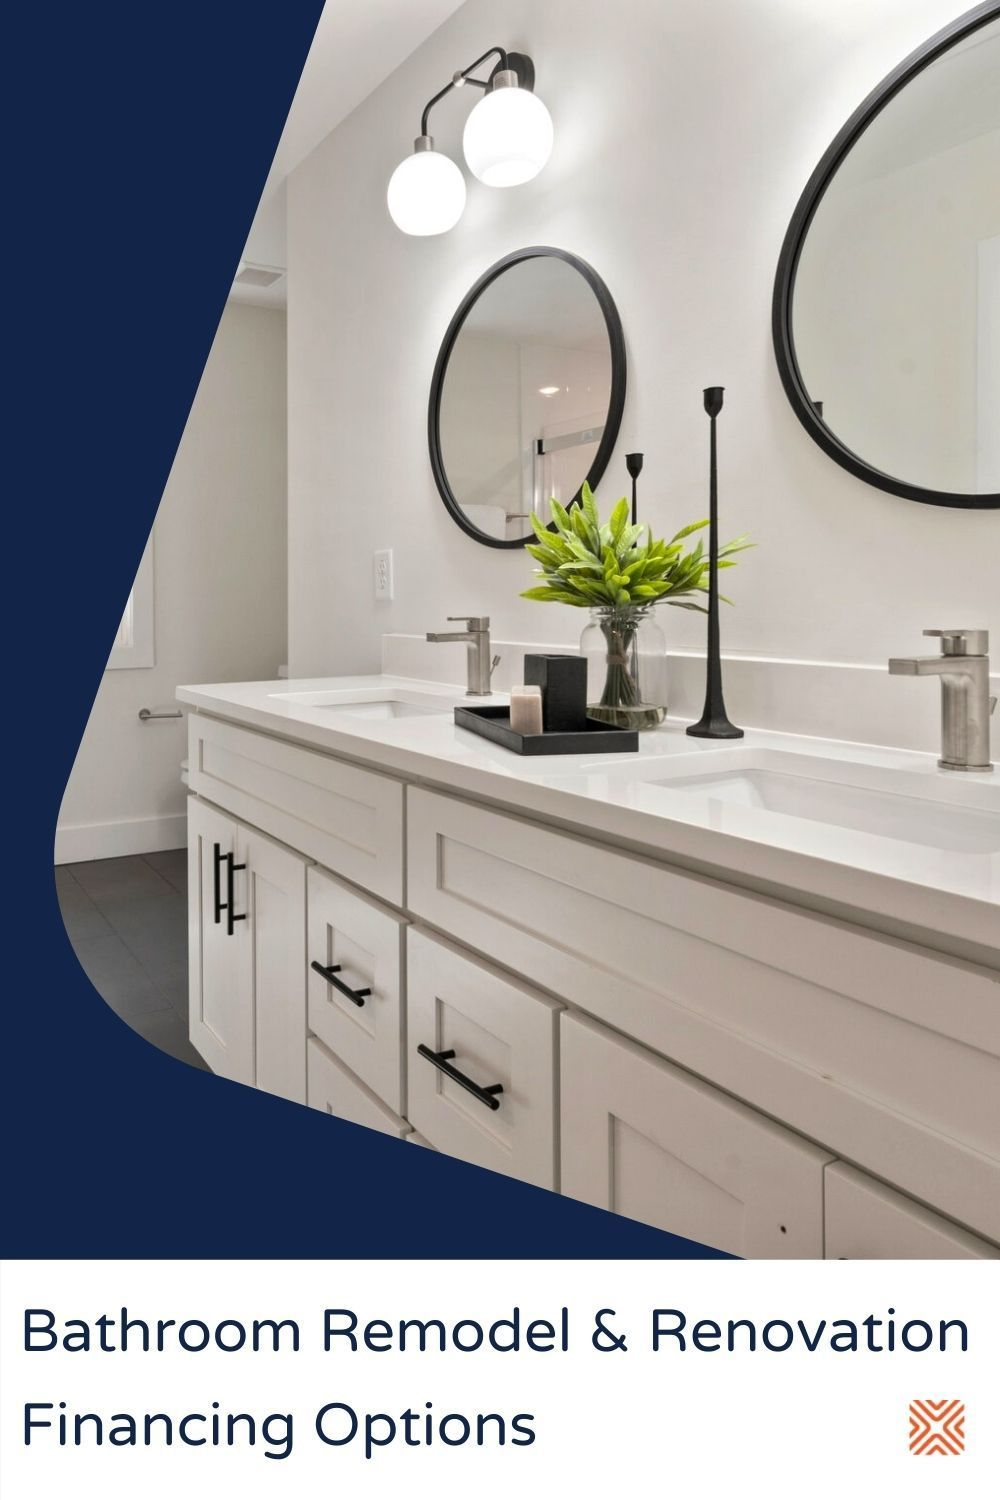 Bathroom Remodel Renovation Financing Options Best Loans Bathroom Renovation Cost Bathroom Remodel Cost Bathroom Makeovers On A Budget